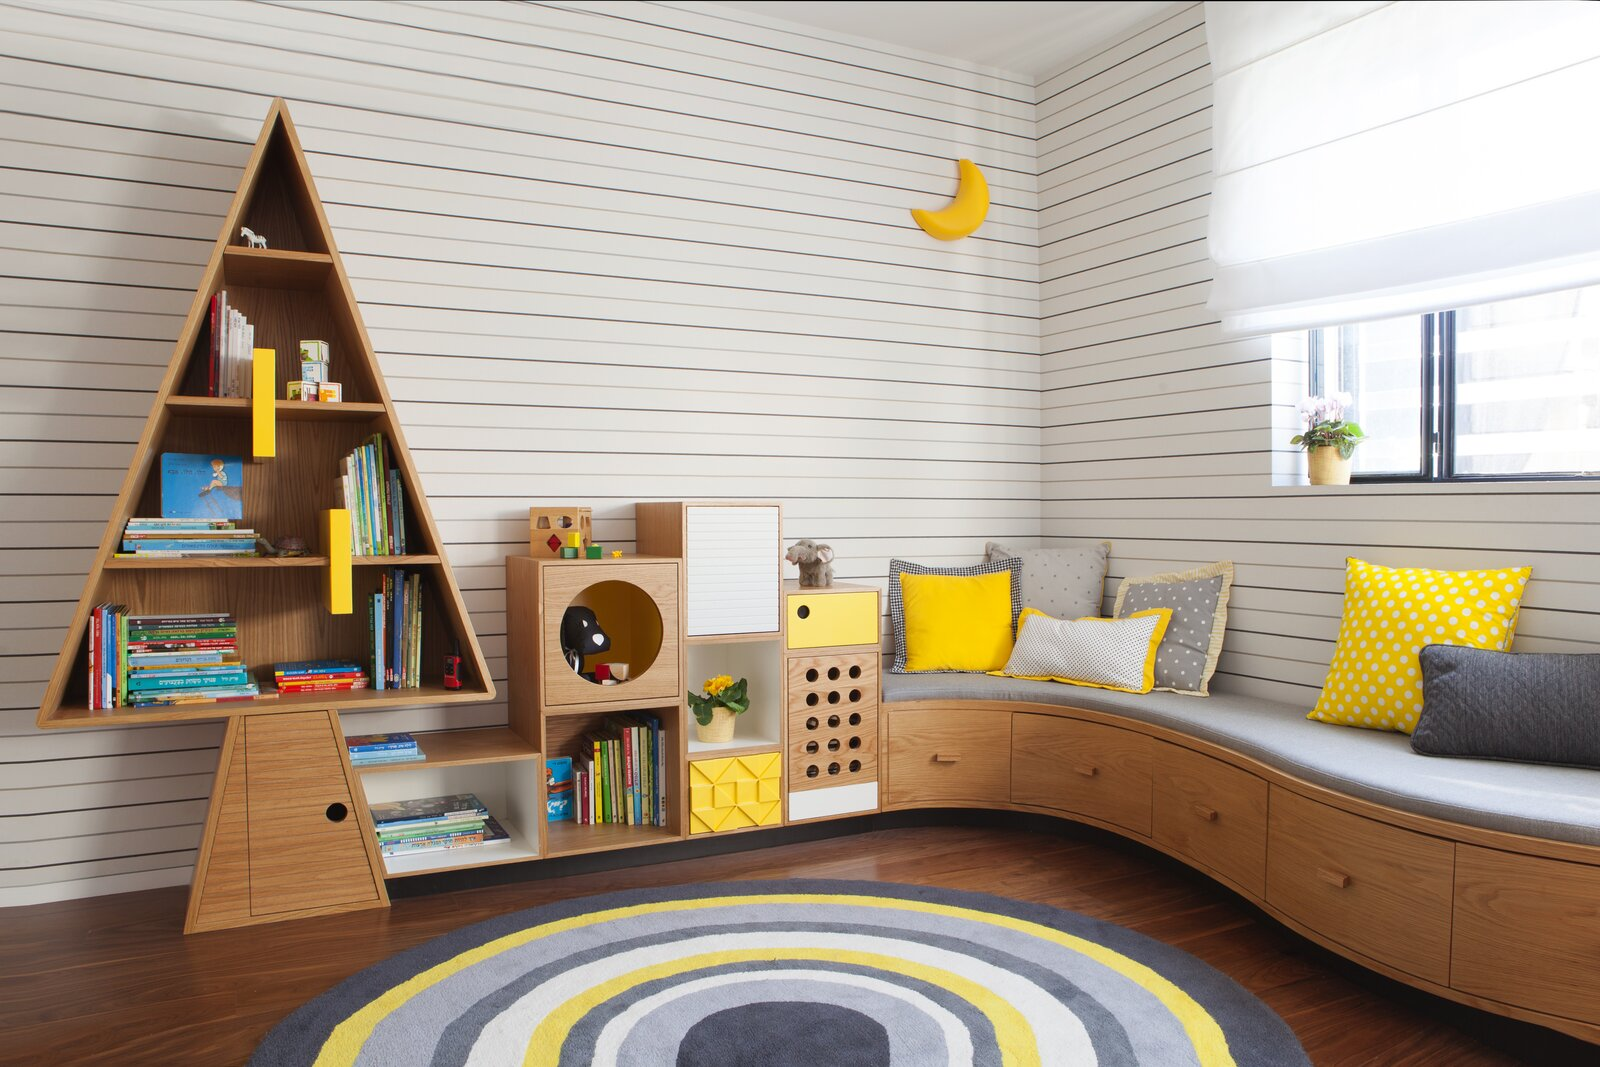 For a family with three kids, Hay fashioned a custom tree-like shelving unit that connects to a curvaceous, built-in sofa—ideal for lounging and reading. Yellow accents brighten up the restrained wooden palette.  Photo 2 of 13 in How to Design a Room That Grows Up With Your Kids